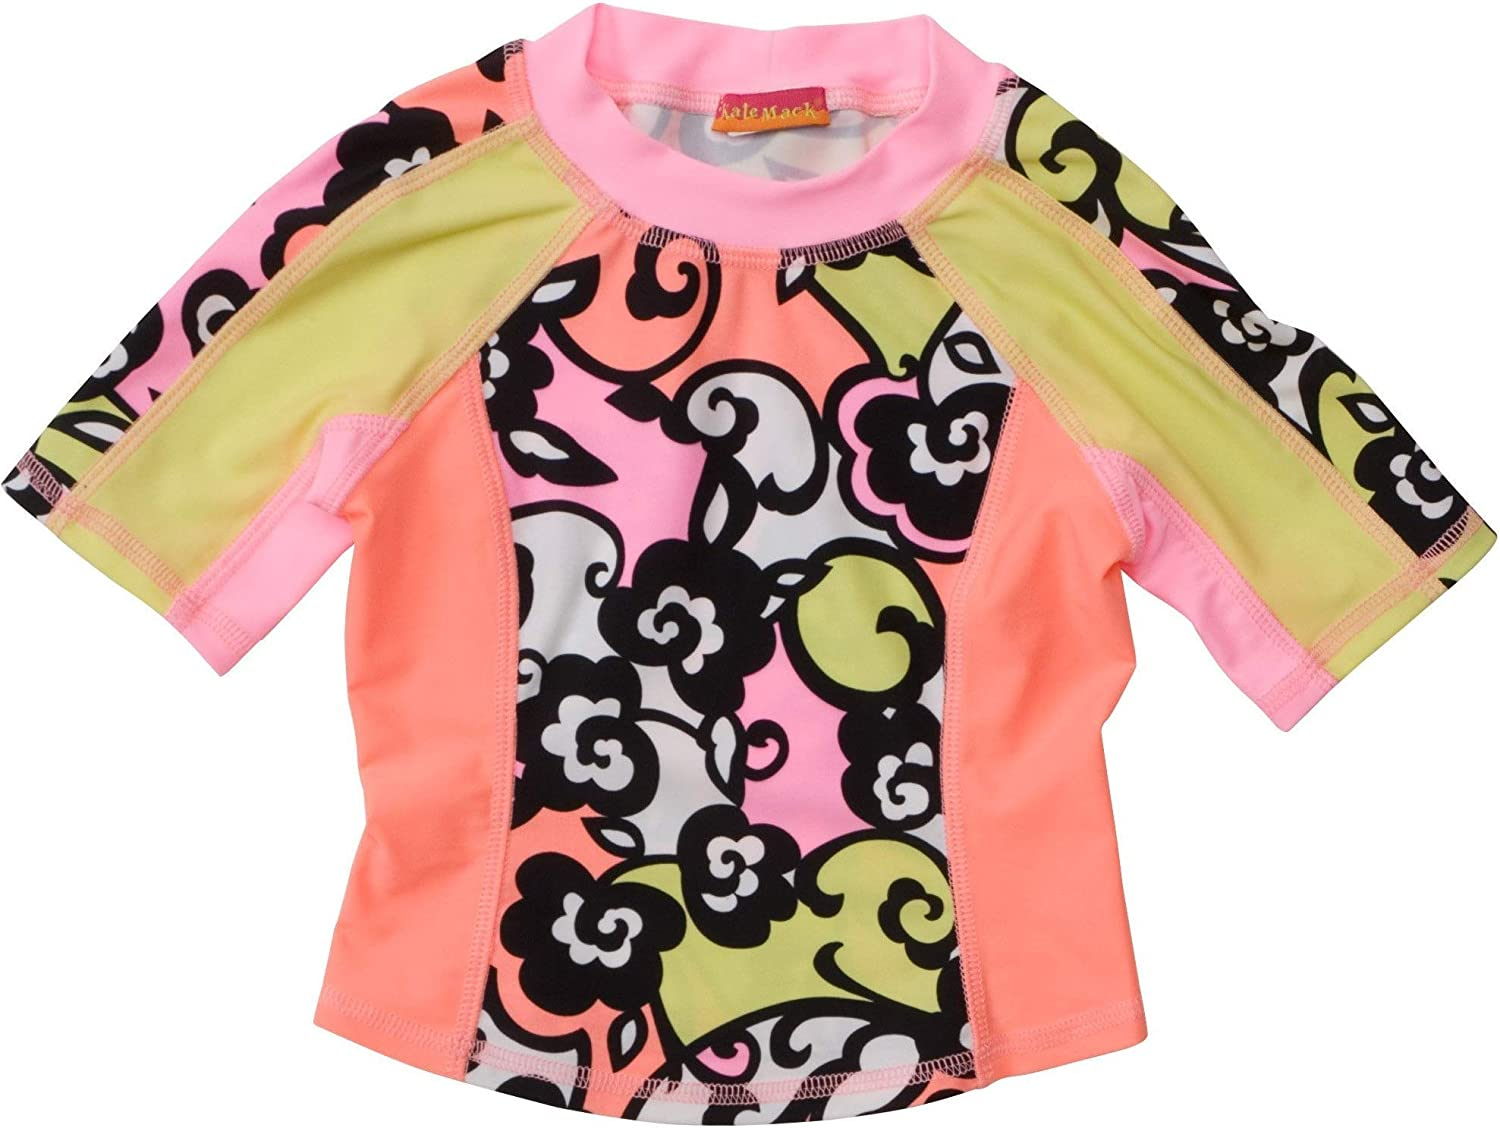 Kate Mack Girls Feelin Groovy 2-Piece Rashguard Surf Shirt and Bikini Bottom